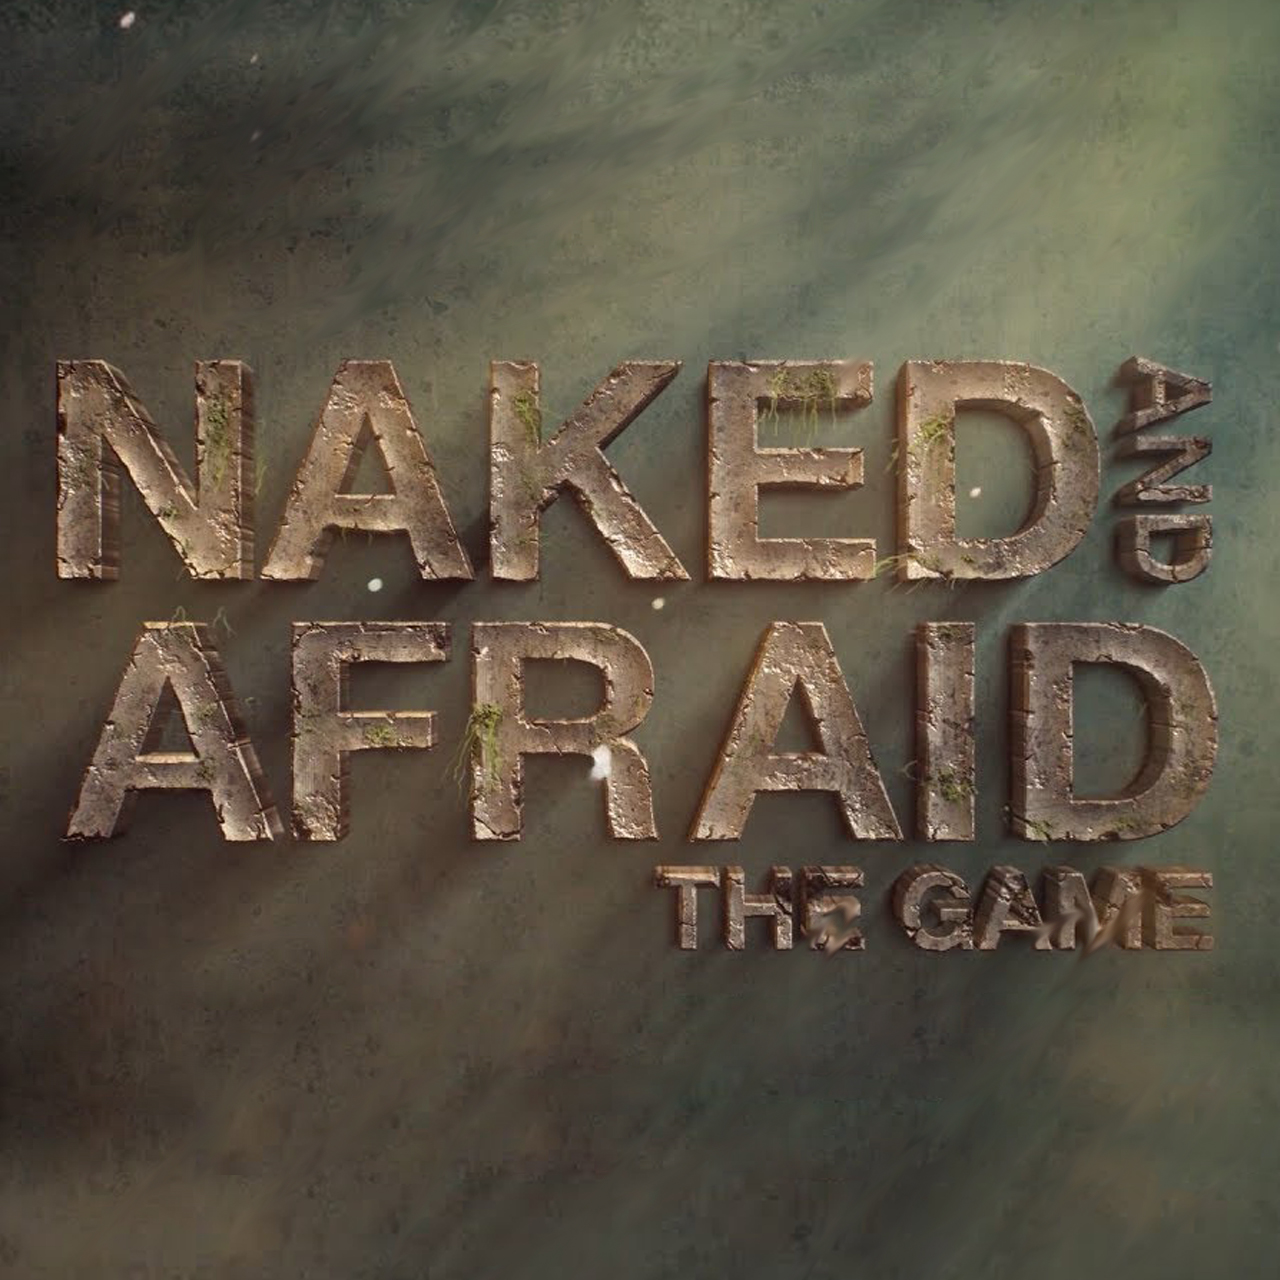 NAKED & AFRAID: THE GAME - Enter the challenge for the true surivivors. Choose a contestant with unique traits, grab a survival tool and try to endure for 21 days on the deserted island of the Pacific Ocean. Hunt, cook and survive everchanging weather, tropical rains and unbearable heat. The longer you'll survive, the higher the reward.